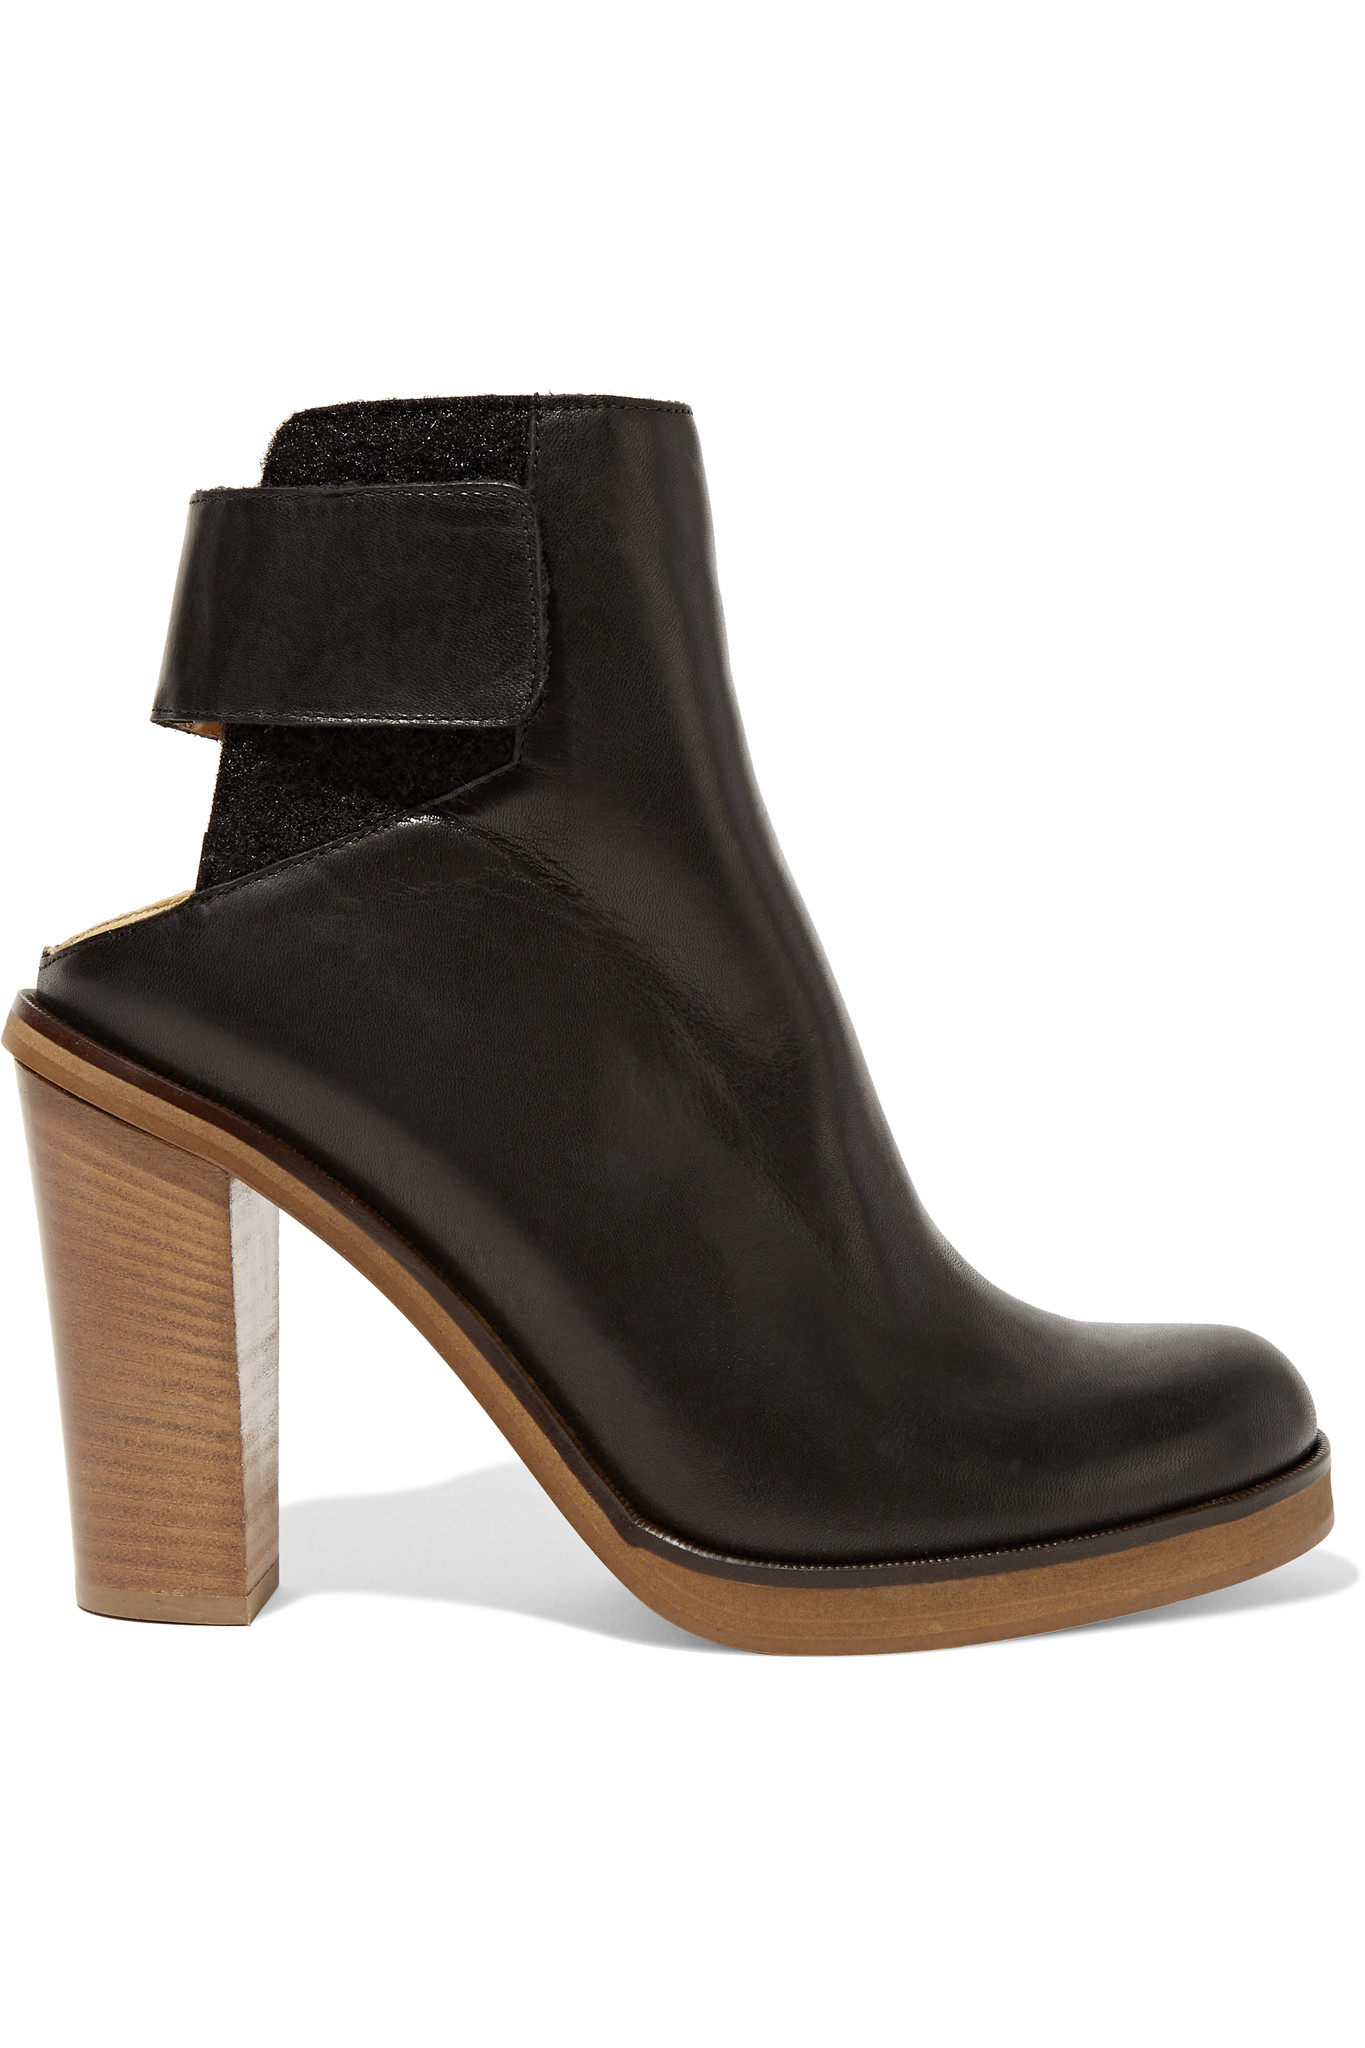 Mm6 by maison martin margiela leather ankle boots in black for Mm6 maison martin margiela